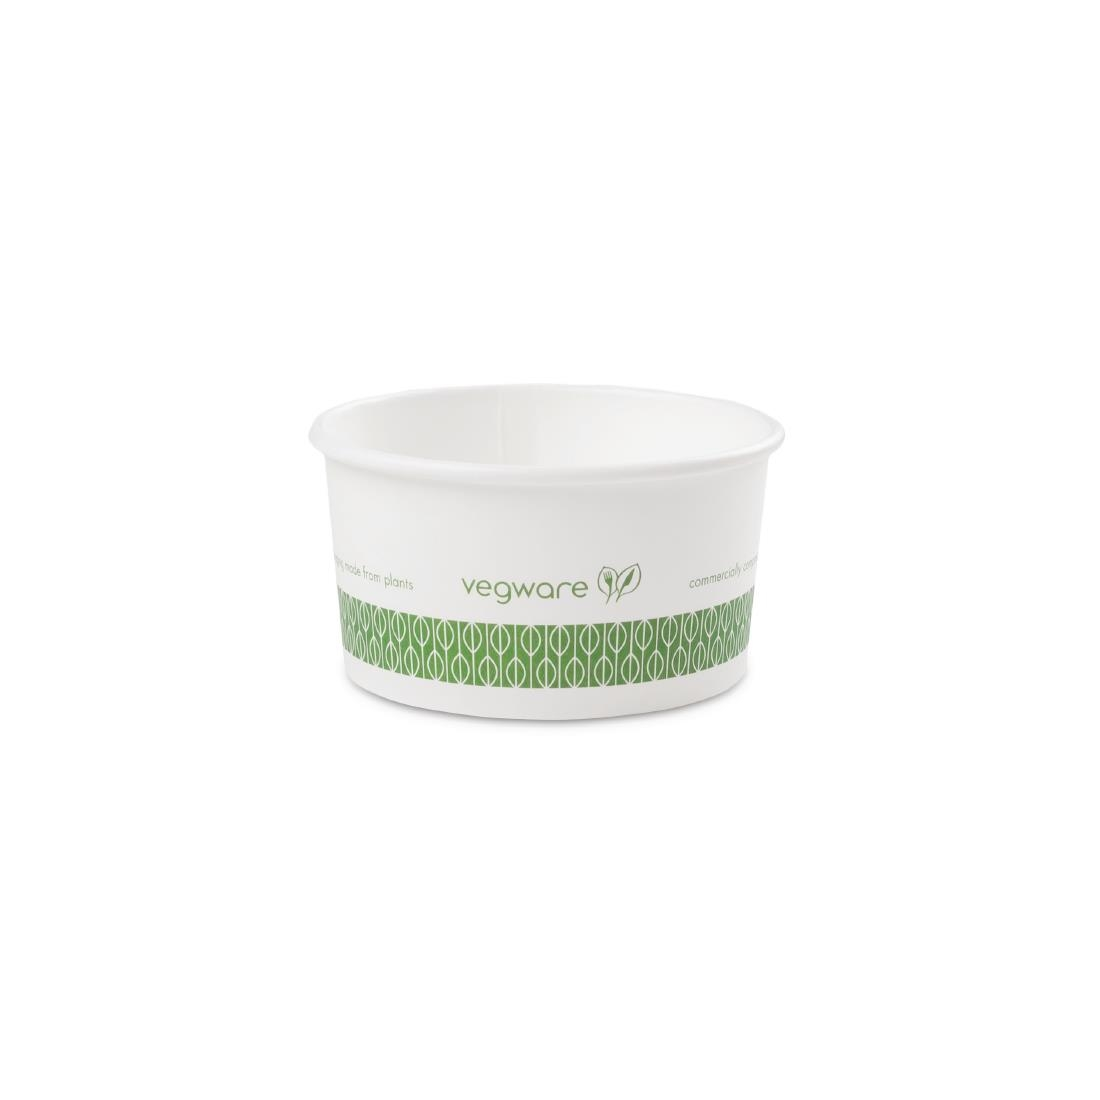 Vegware Compostable Food Pots 170ml / 6oz Pack of 1000